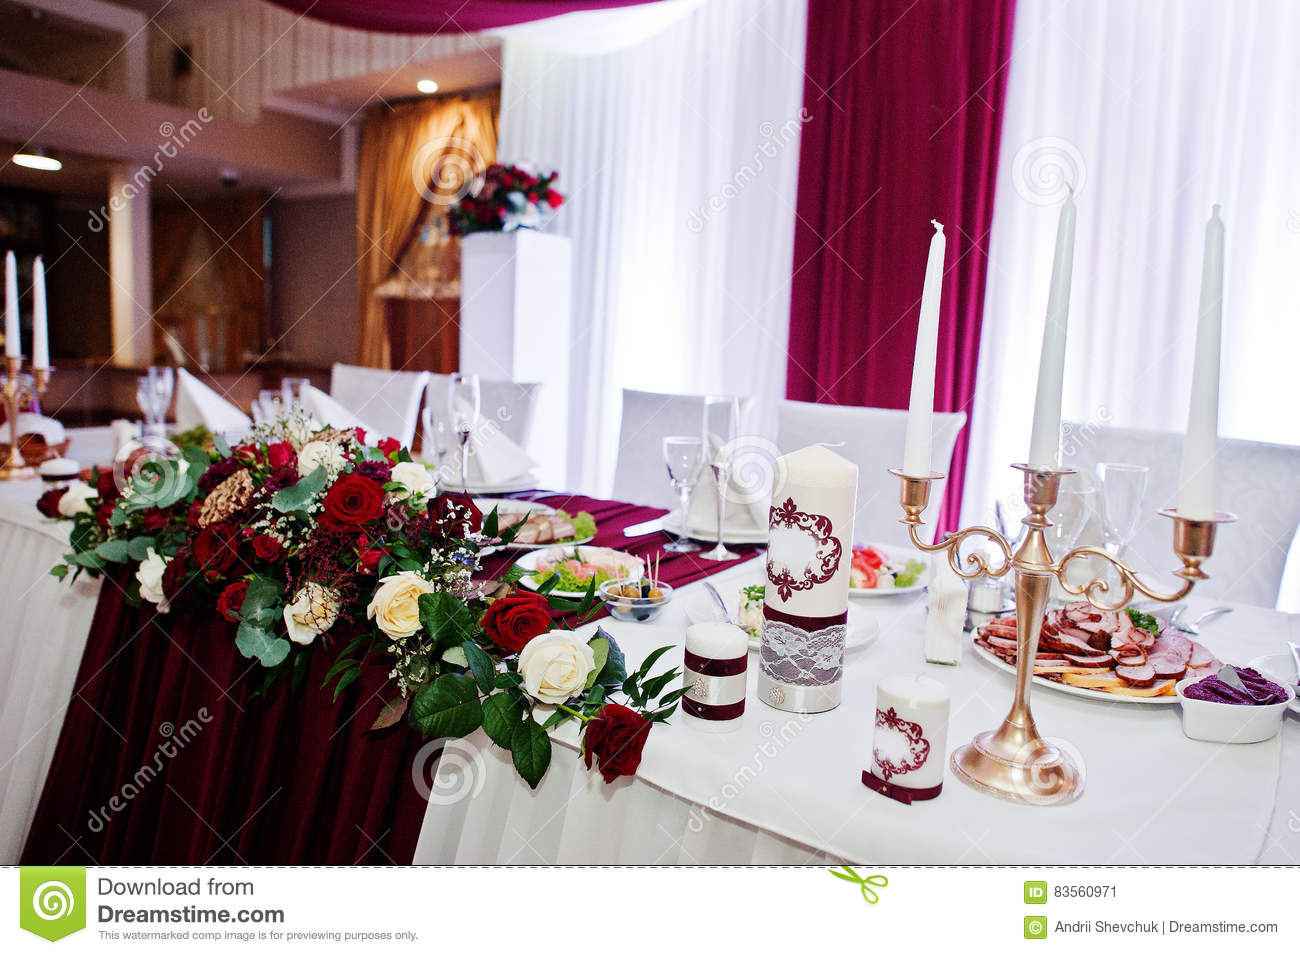 Wedding Flowers Of White And Red Roses On Table Of Newlyweds Stock